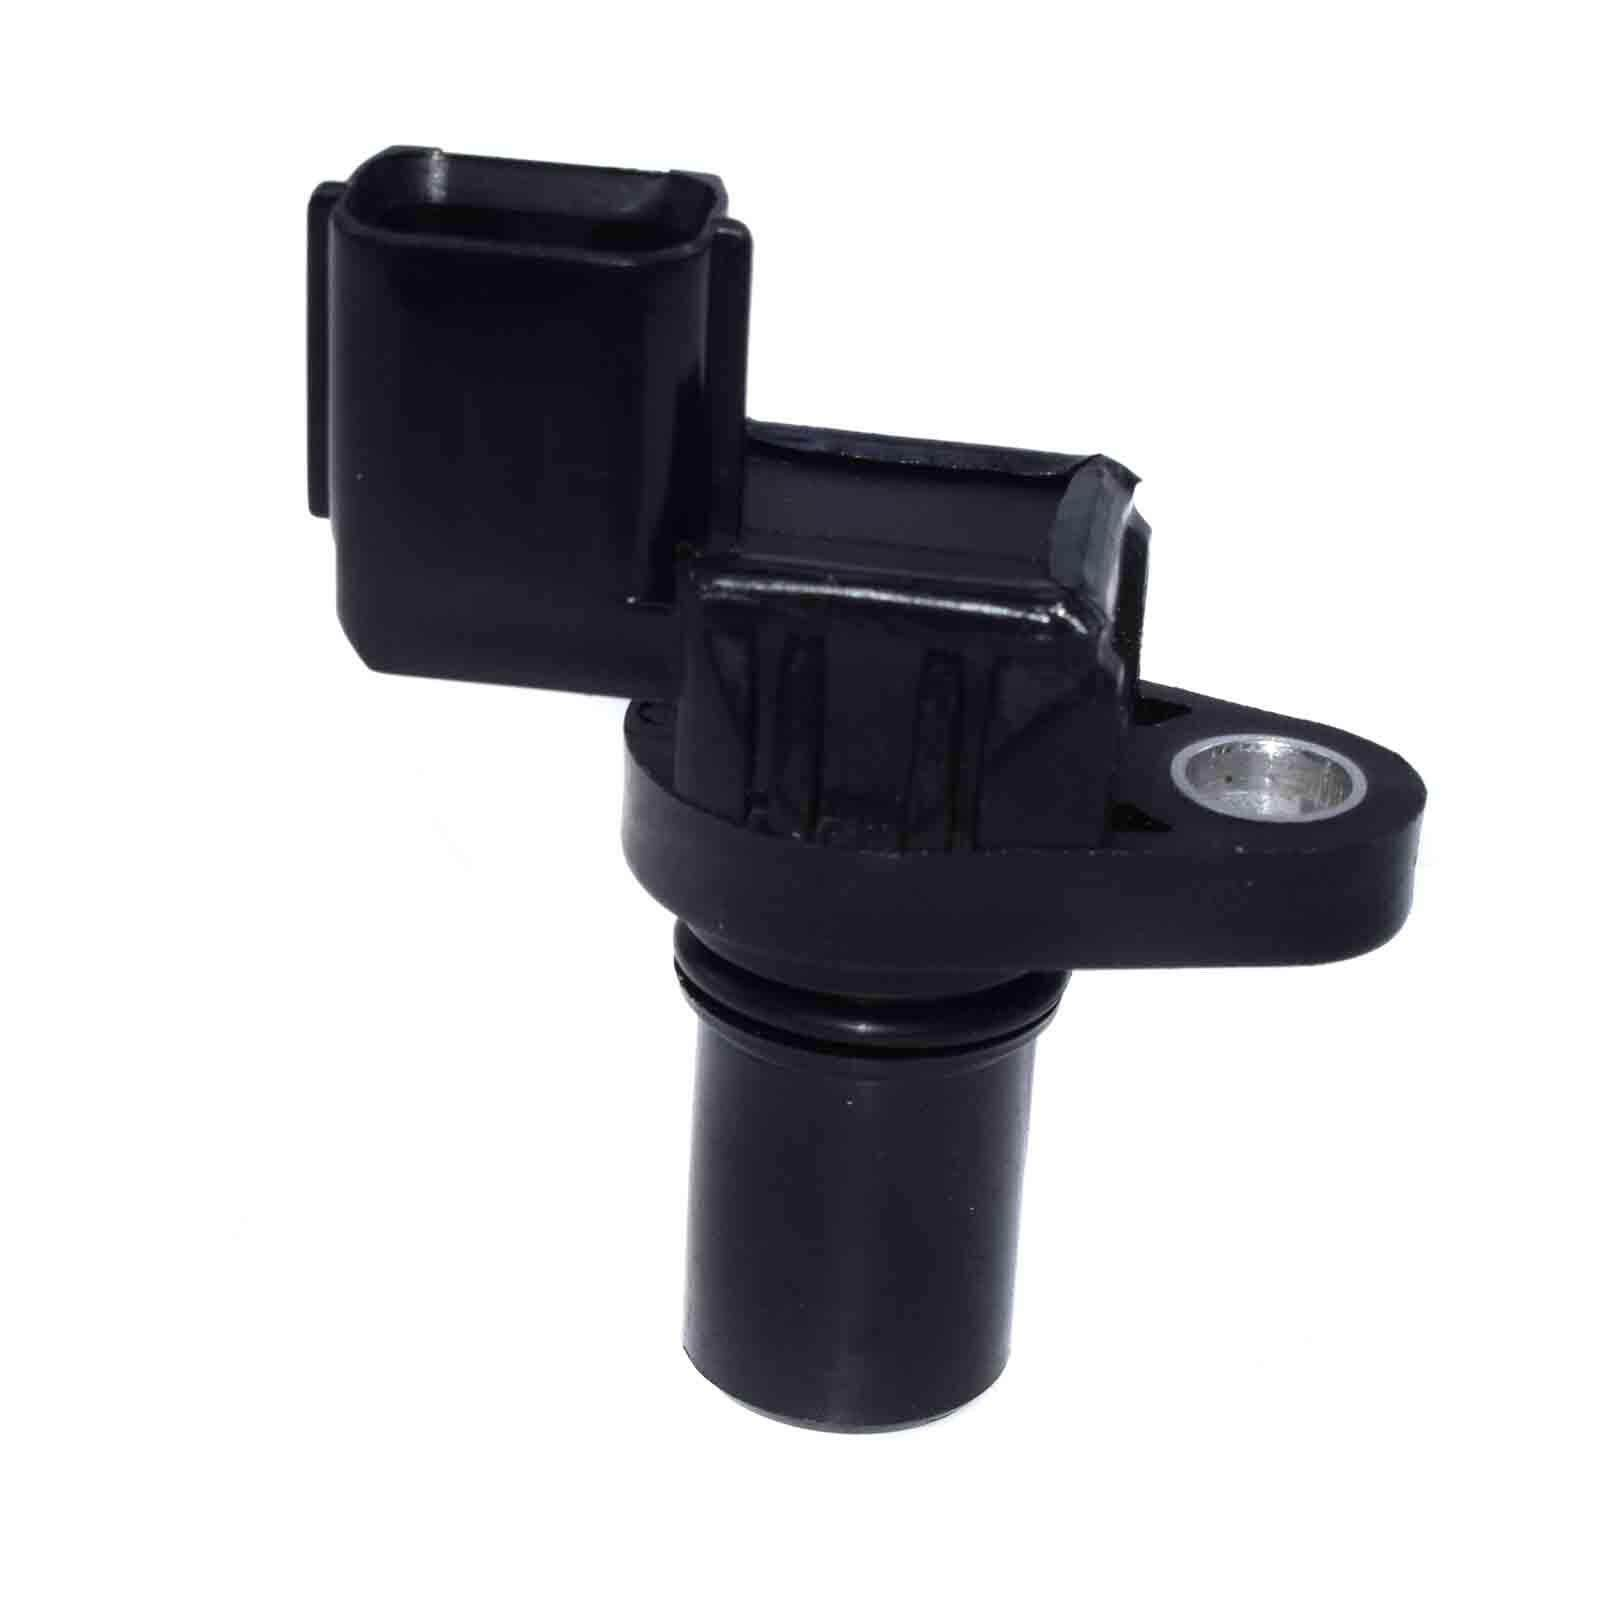 Camshaft position Sensor For Mitsubishi Carisma Lancer Volvo S40 V40  Chrysler Dodge Chevrolet Suzuki MD327107 J5T23071A 30874179